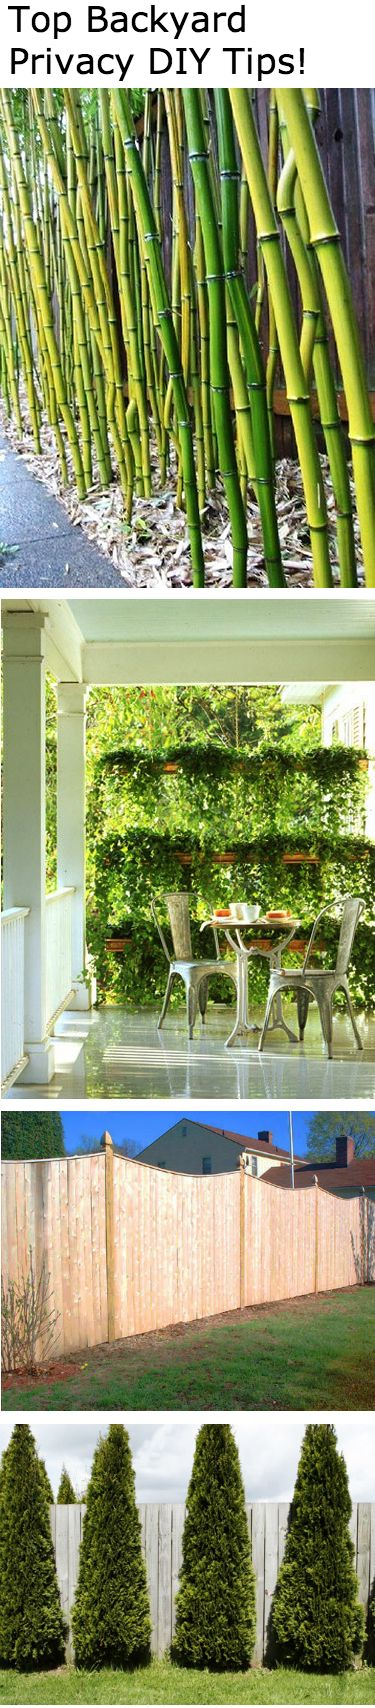 5 Landscaping Ideas to Increase Backyard Privacy #privacy #lanscaping